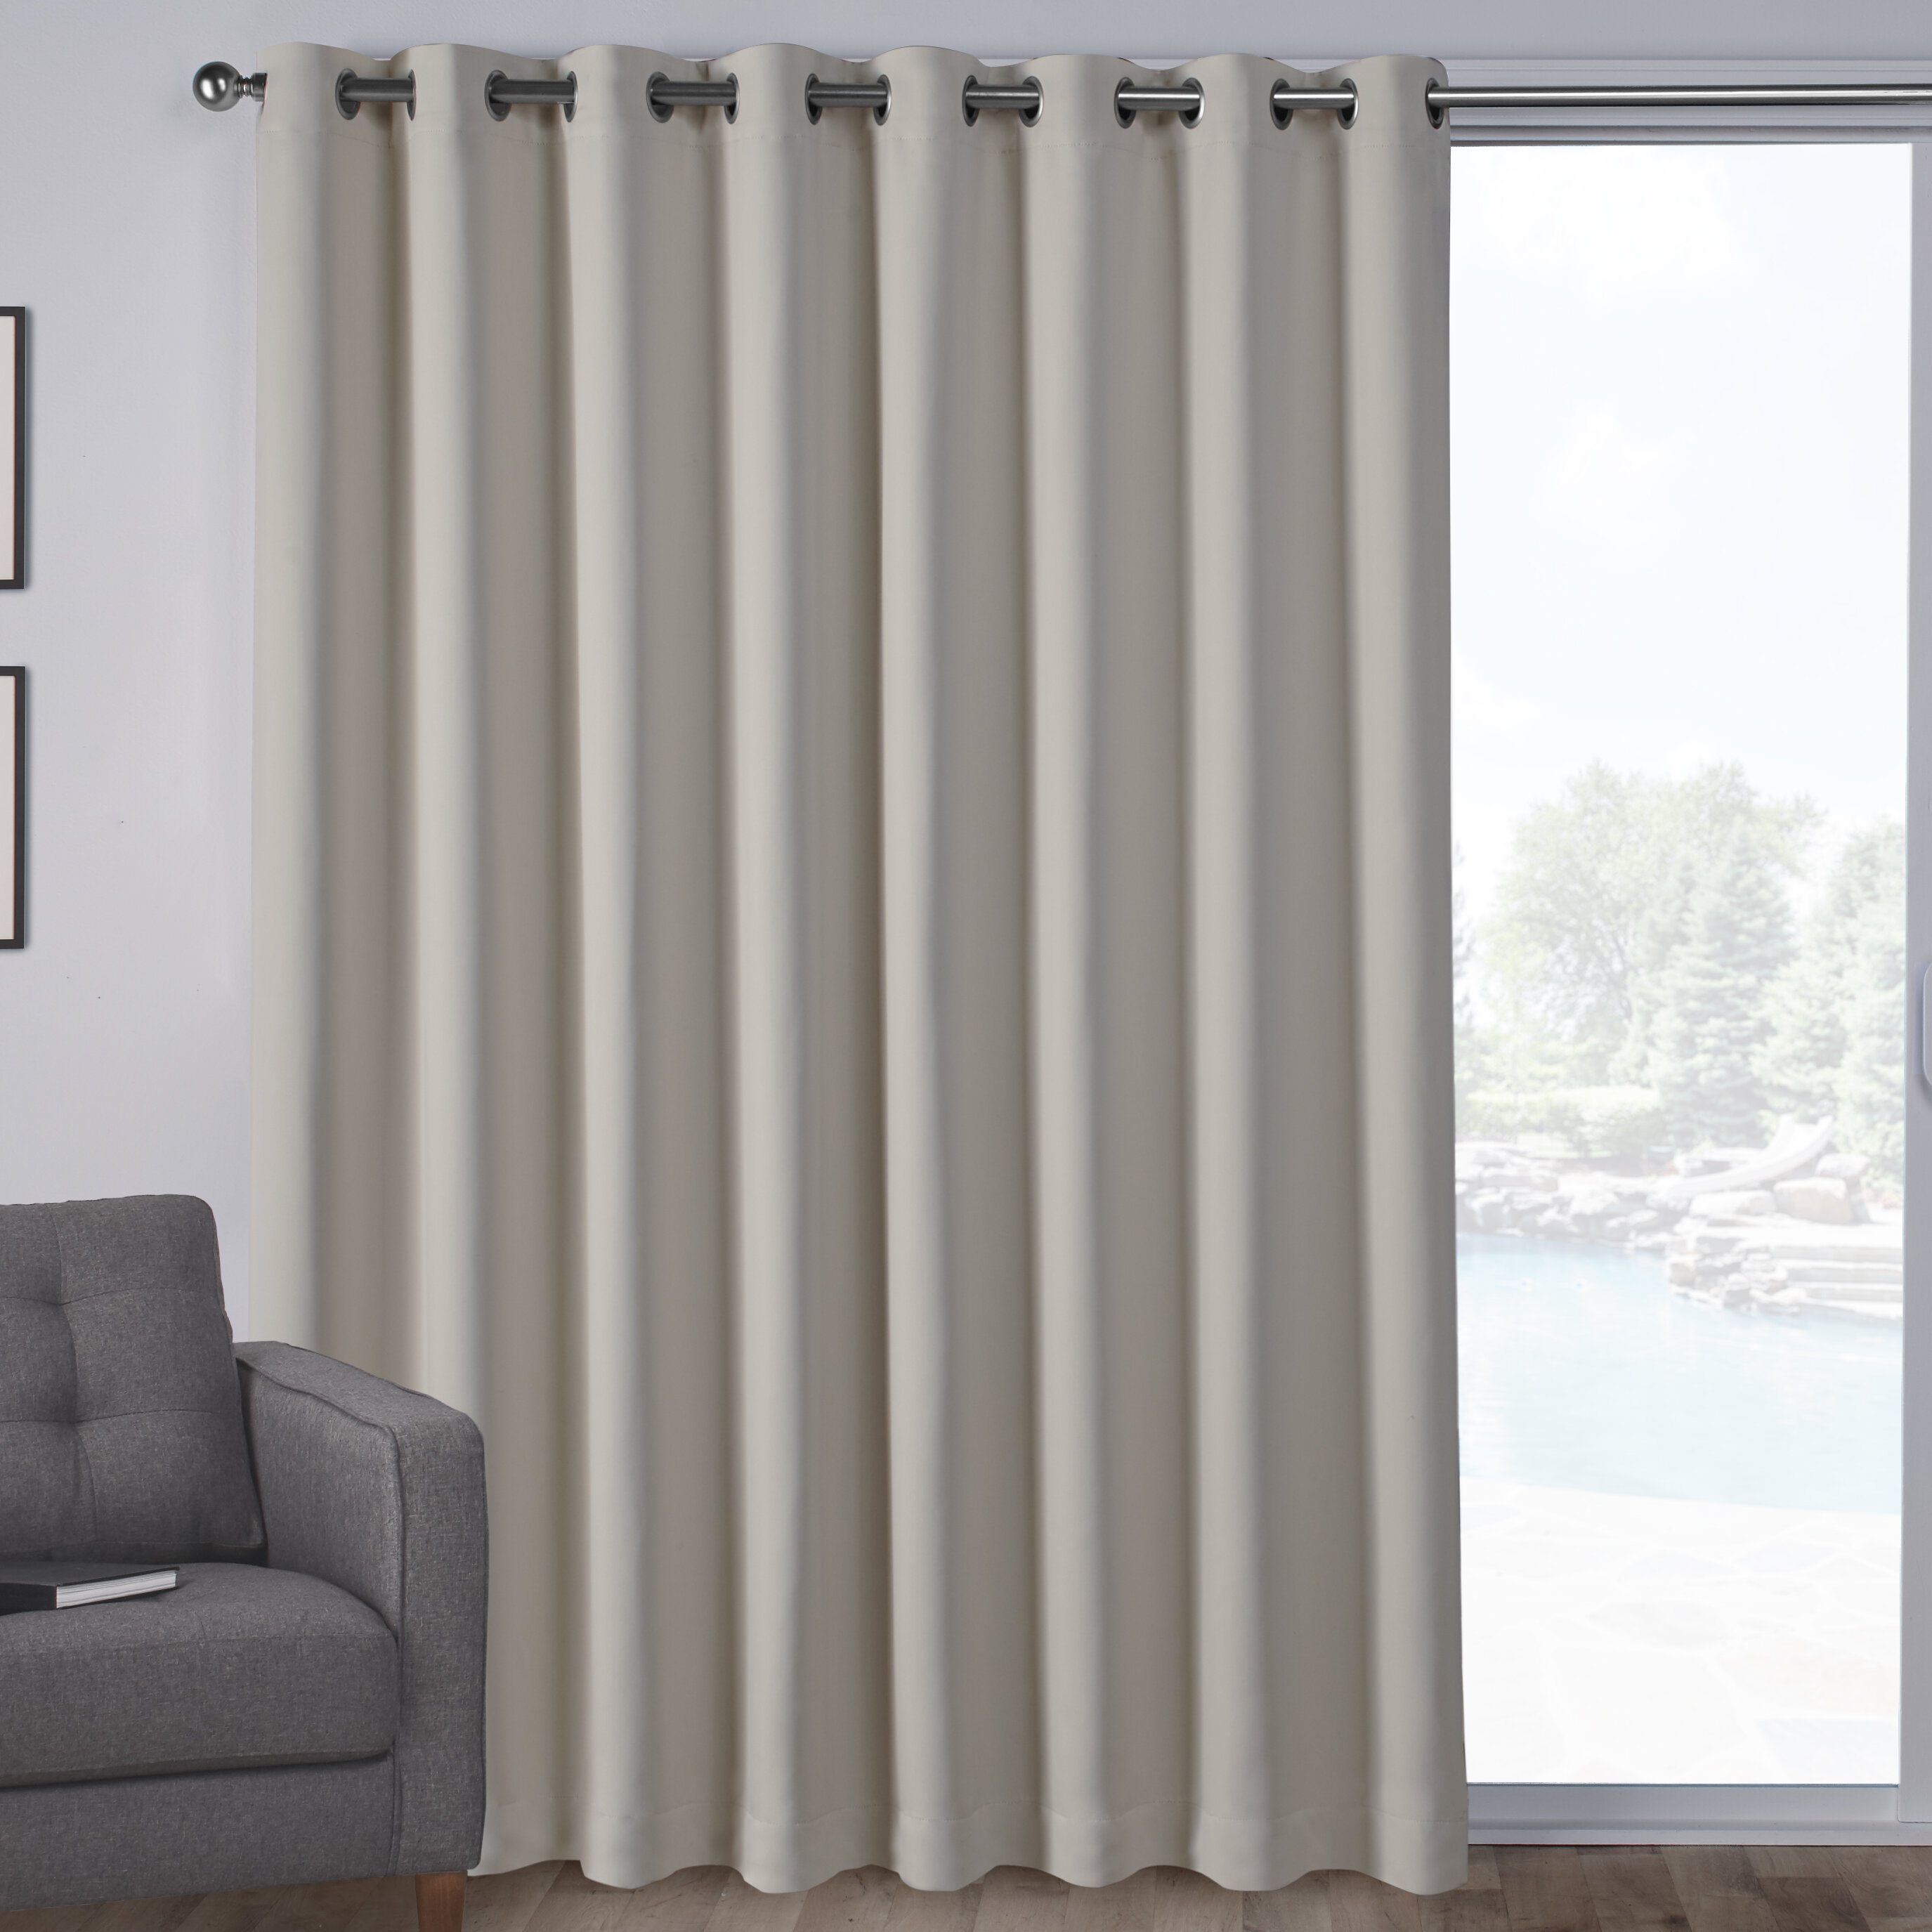 blackout wide curtain in for livingcurtain rods large window very oversized blackoutcurtains traditional curtains extra windows captivating